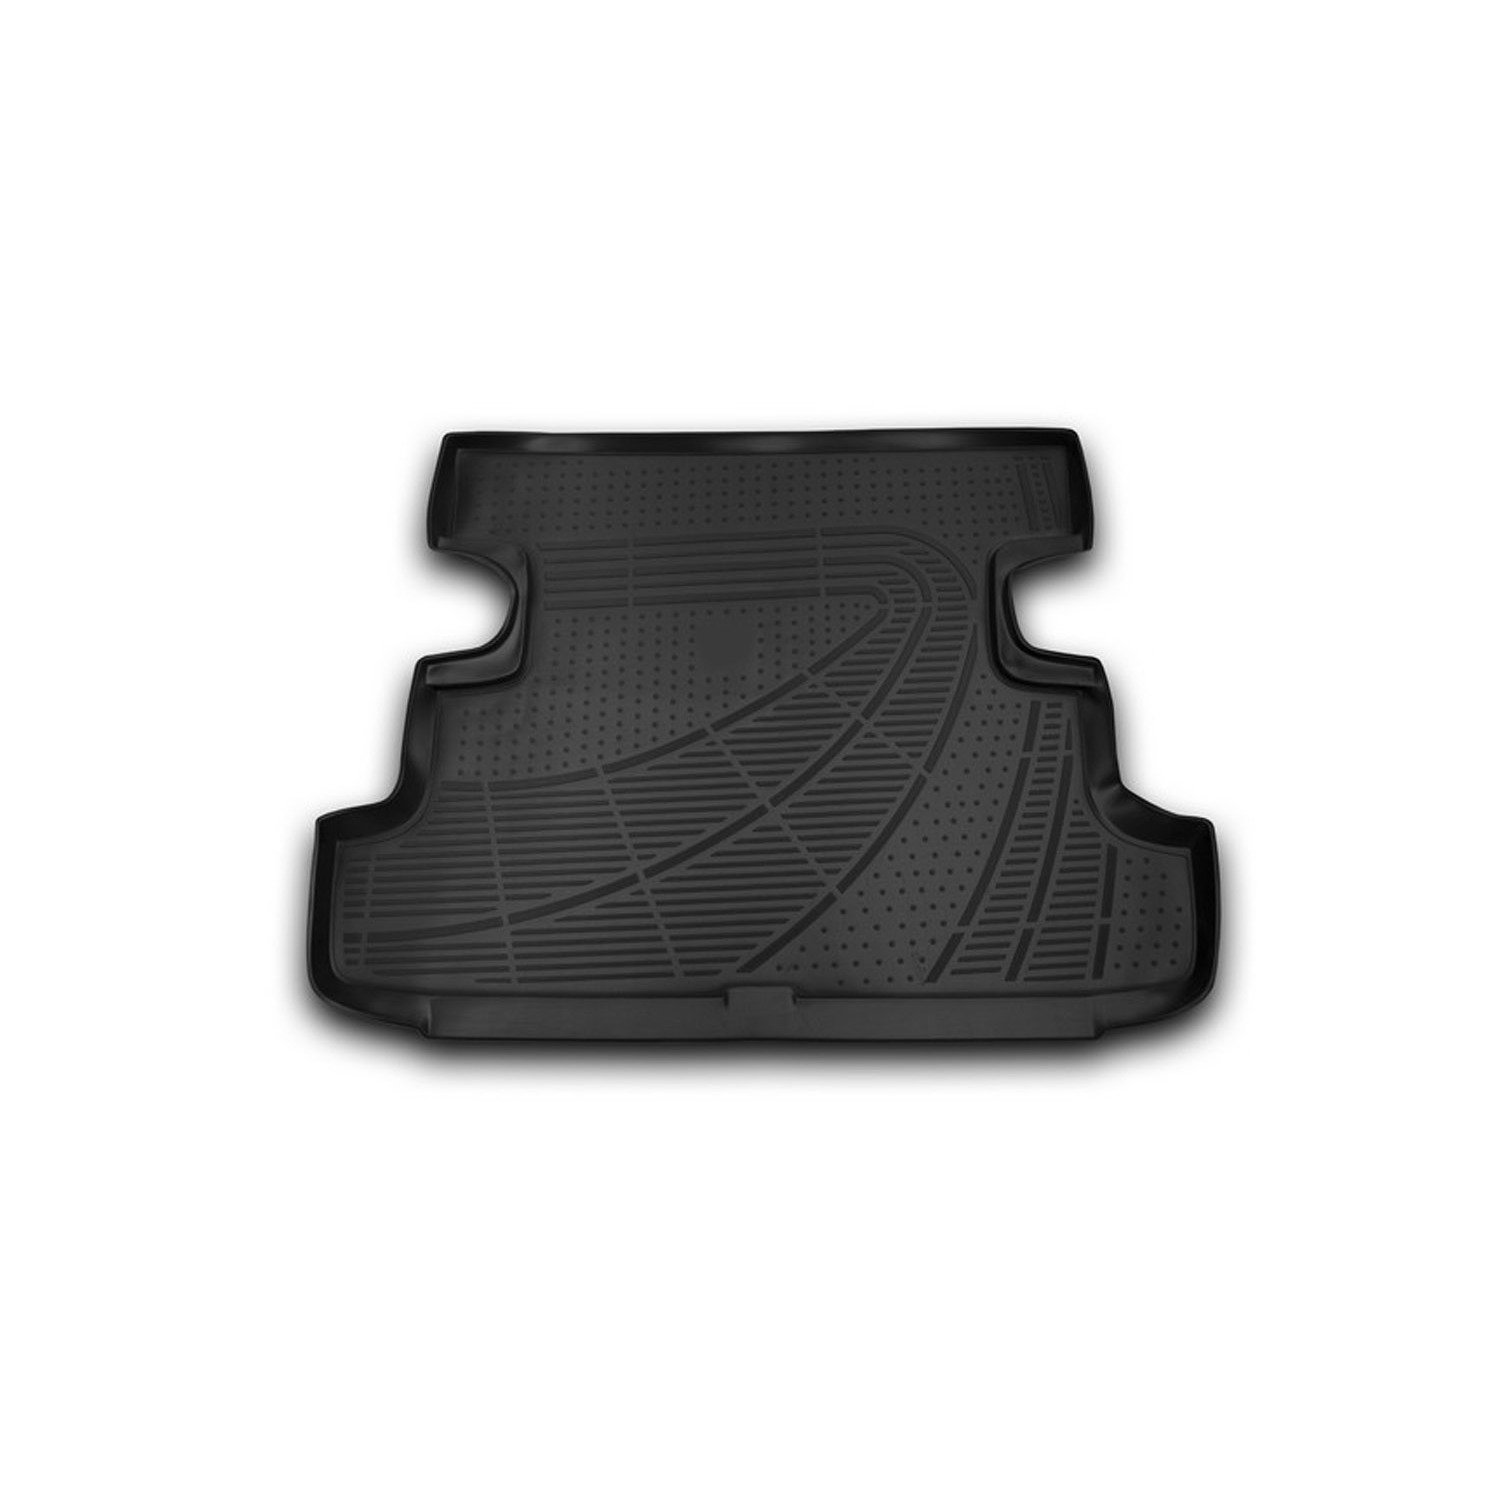 Trunk Mat For LADA 4x4, 2009, Implement. 5D 1 PCs E200250E1